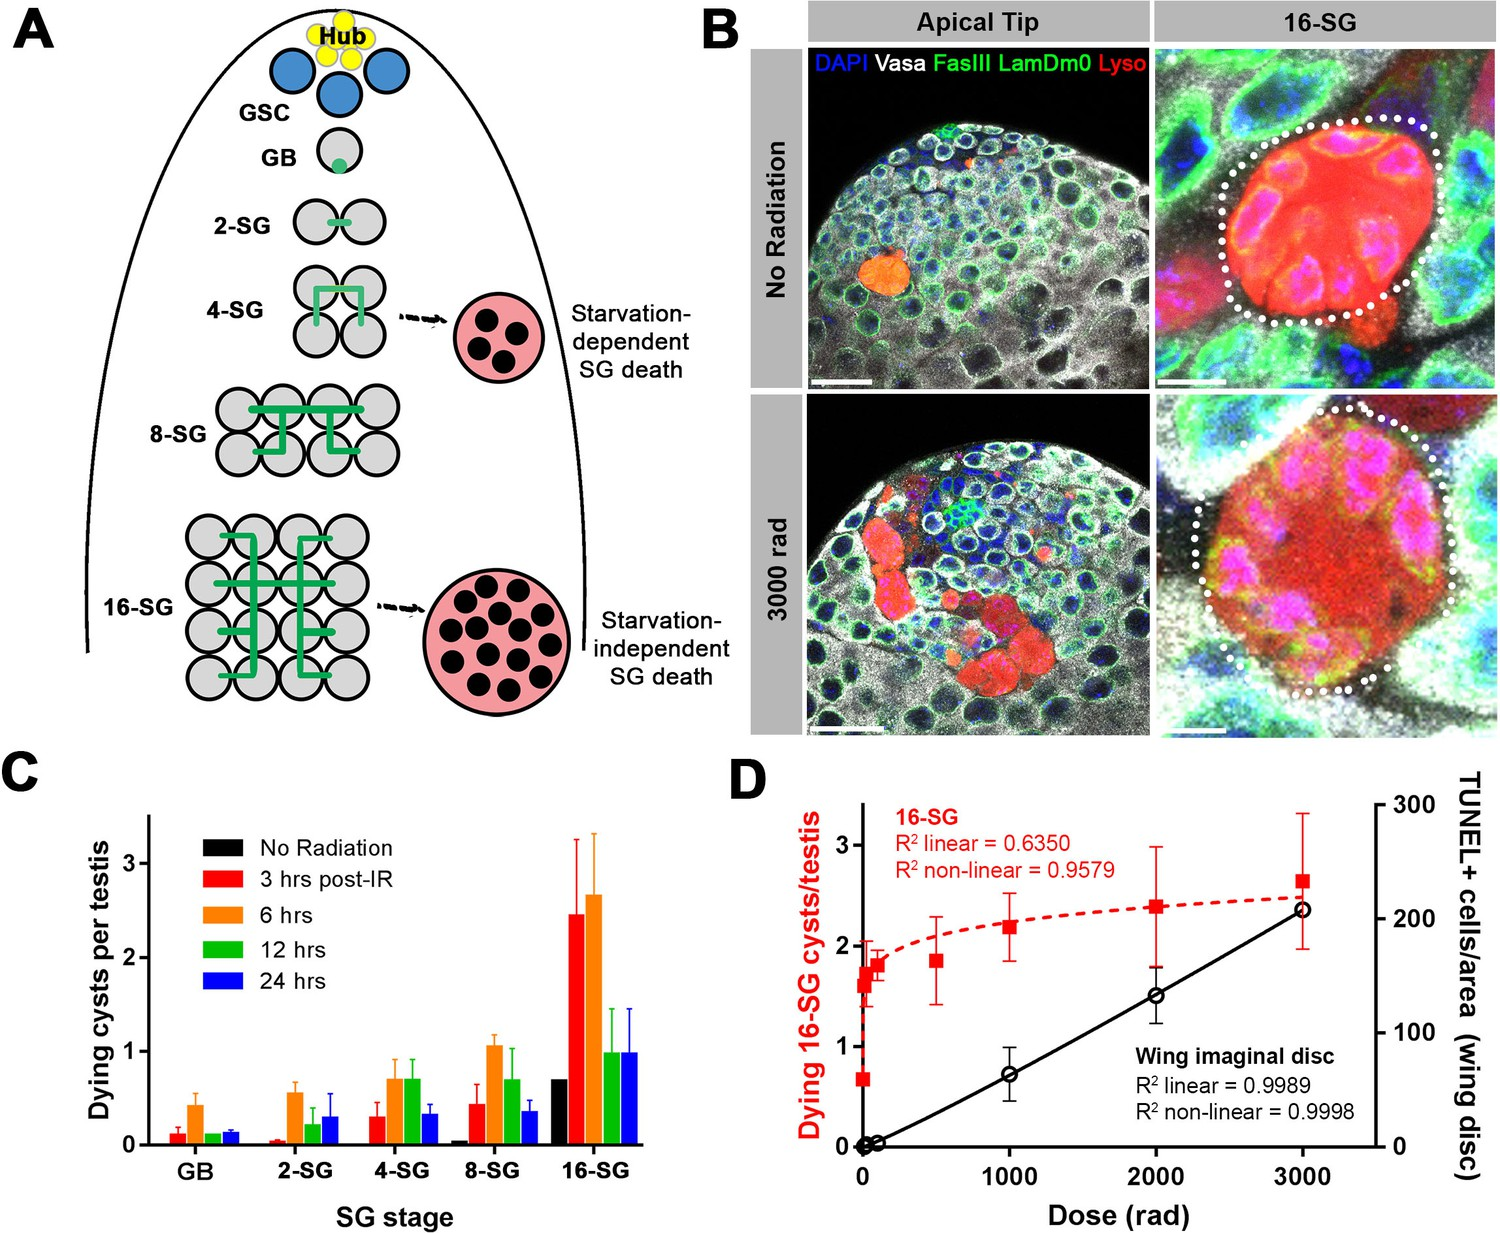 Germ cell connectivity enhances cell death in response to DNA damage in the Drosophila testis                    RUNX1 marks a luminal castration-resistant lineage established at the onset of prostate development                                      ARID1A loss in adult hepatocytes activates β-catenin-mediated erythropoietin transcription                                      Asymmetric neurogenic commitment of retinal progenitors involves Notch through the endocytic pathway